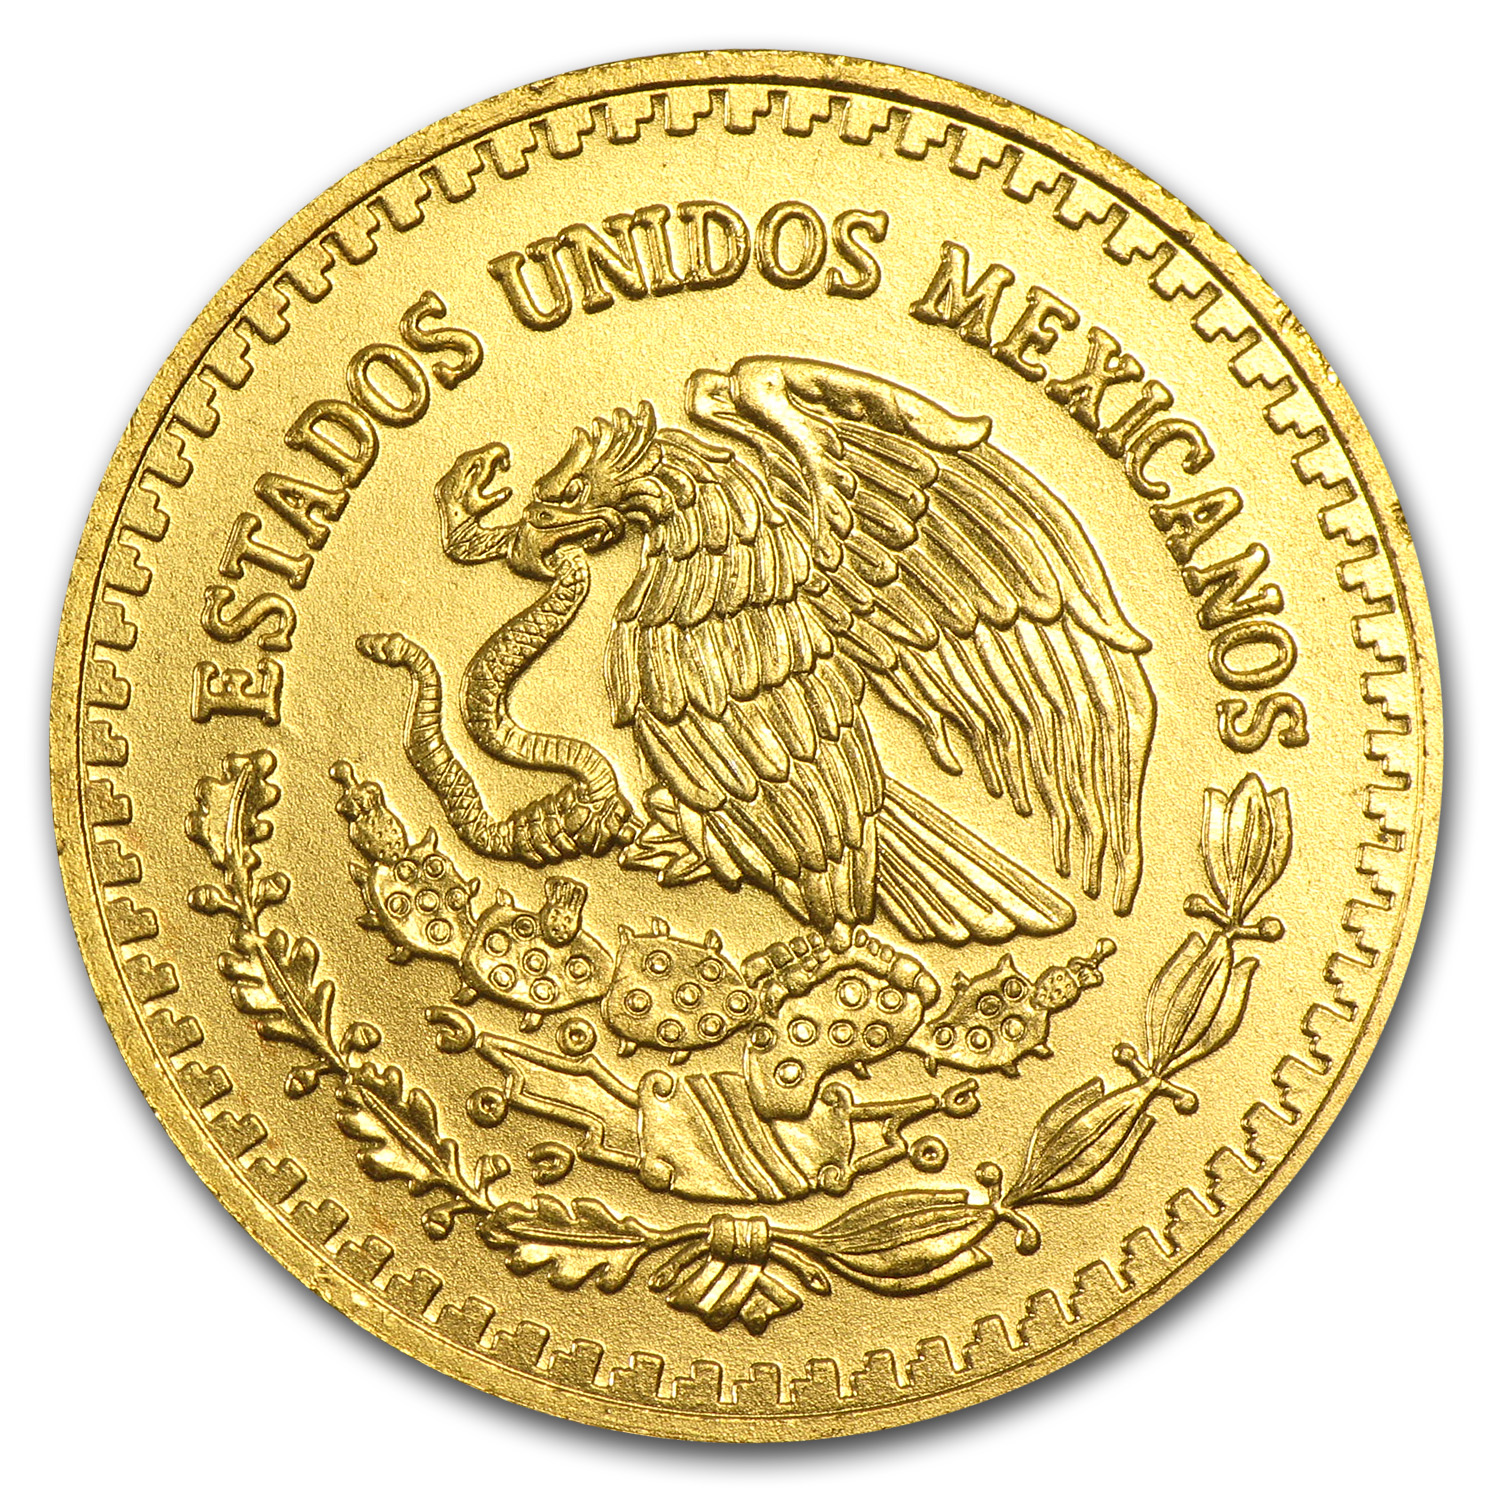 2009 1/4 oz Gold Mexican Libertad (Brilliant Uncirculated)